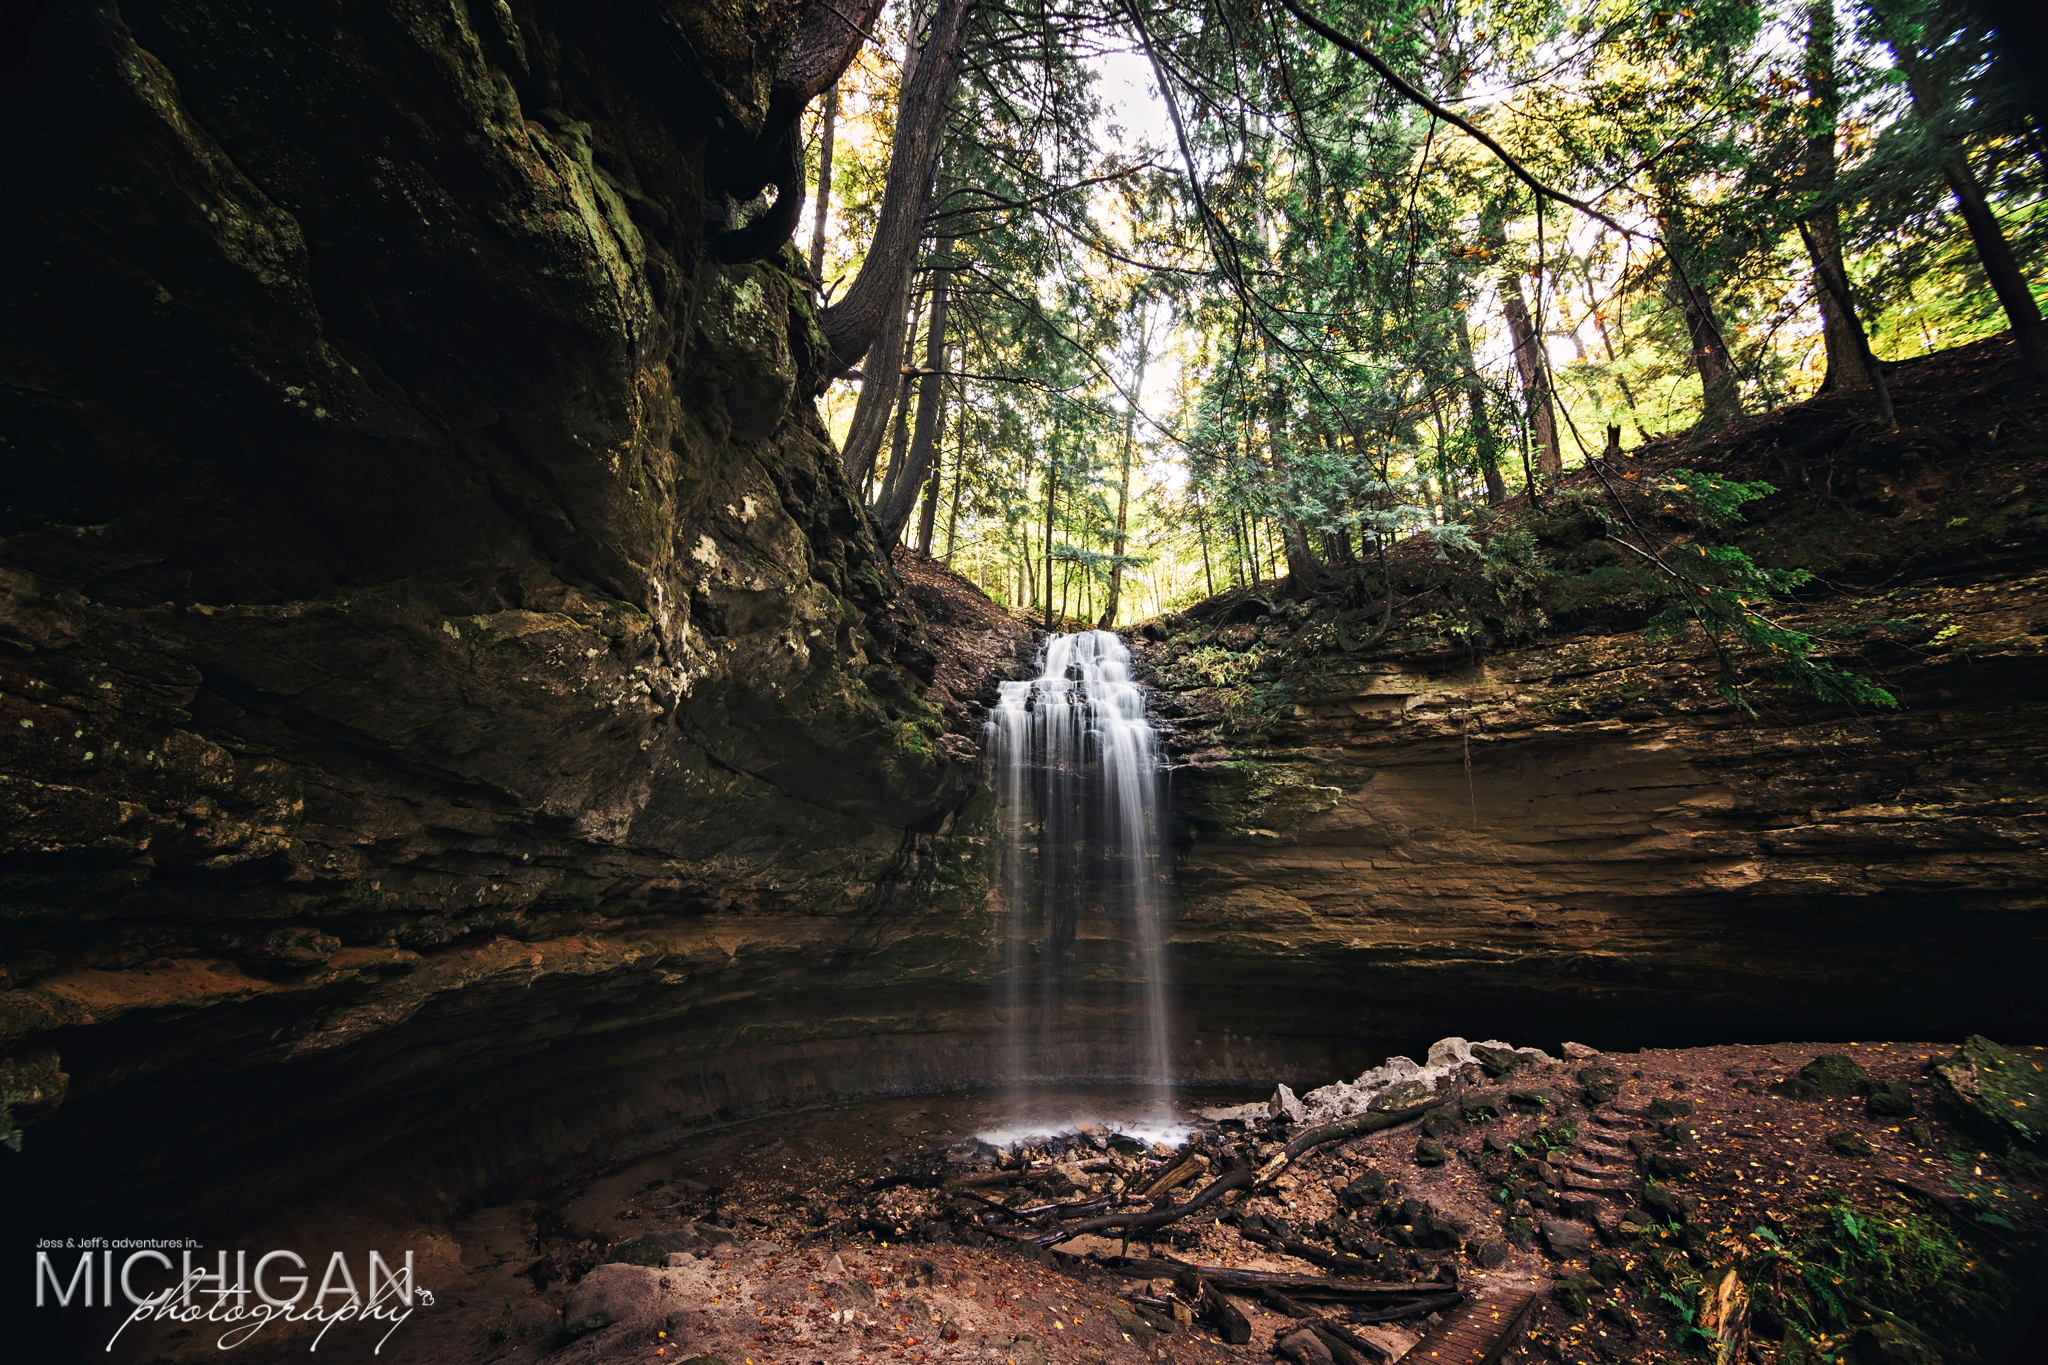 Tannery Falls in Munising Michigan